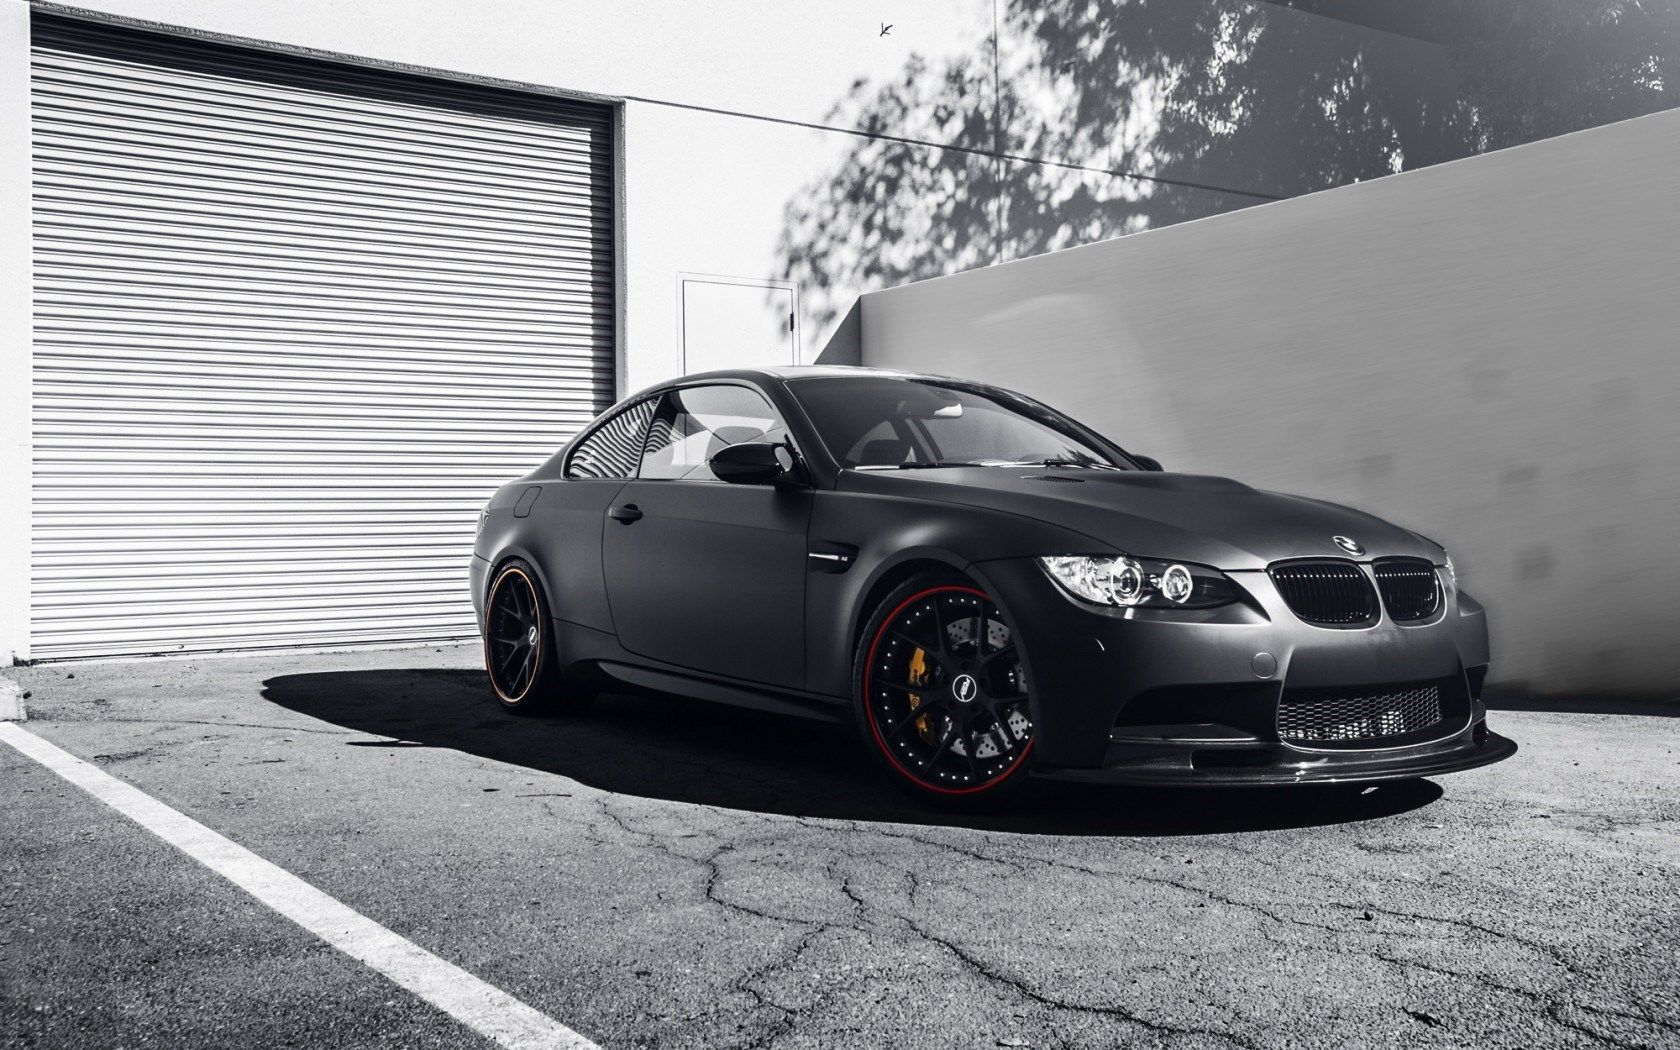 Car Bmw M3 Coupe Garage Matte Black Hd Wallpaper Zoomwalls With